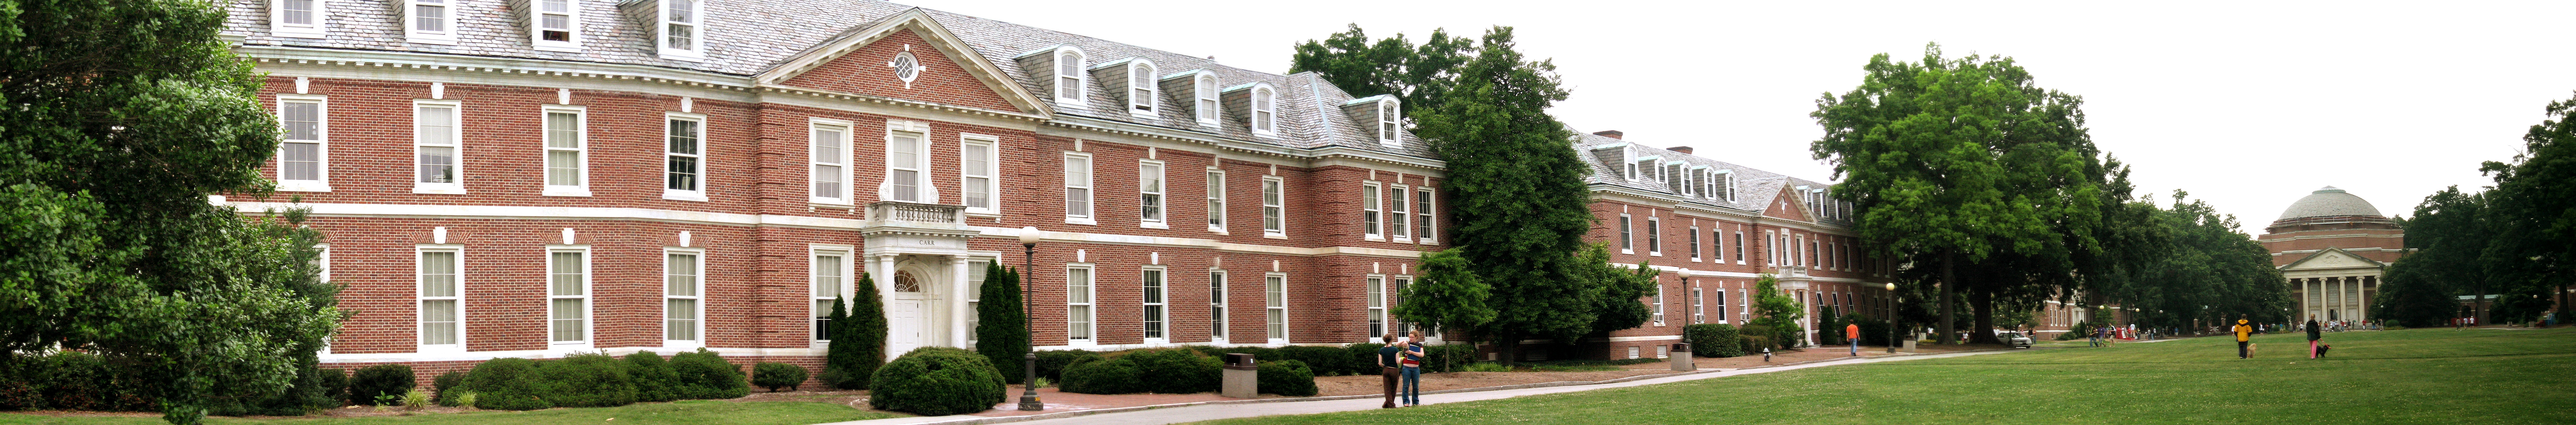 Less is More in Admissions, More Isn't Better in College Admissions, Extra Letters of Recommendation